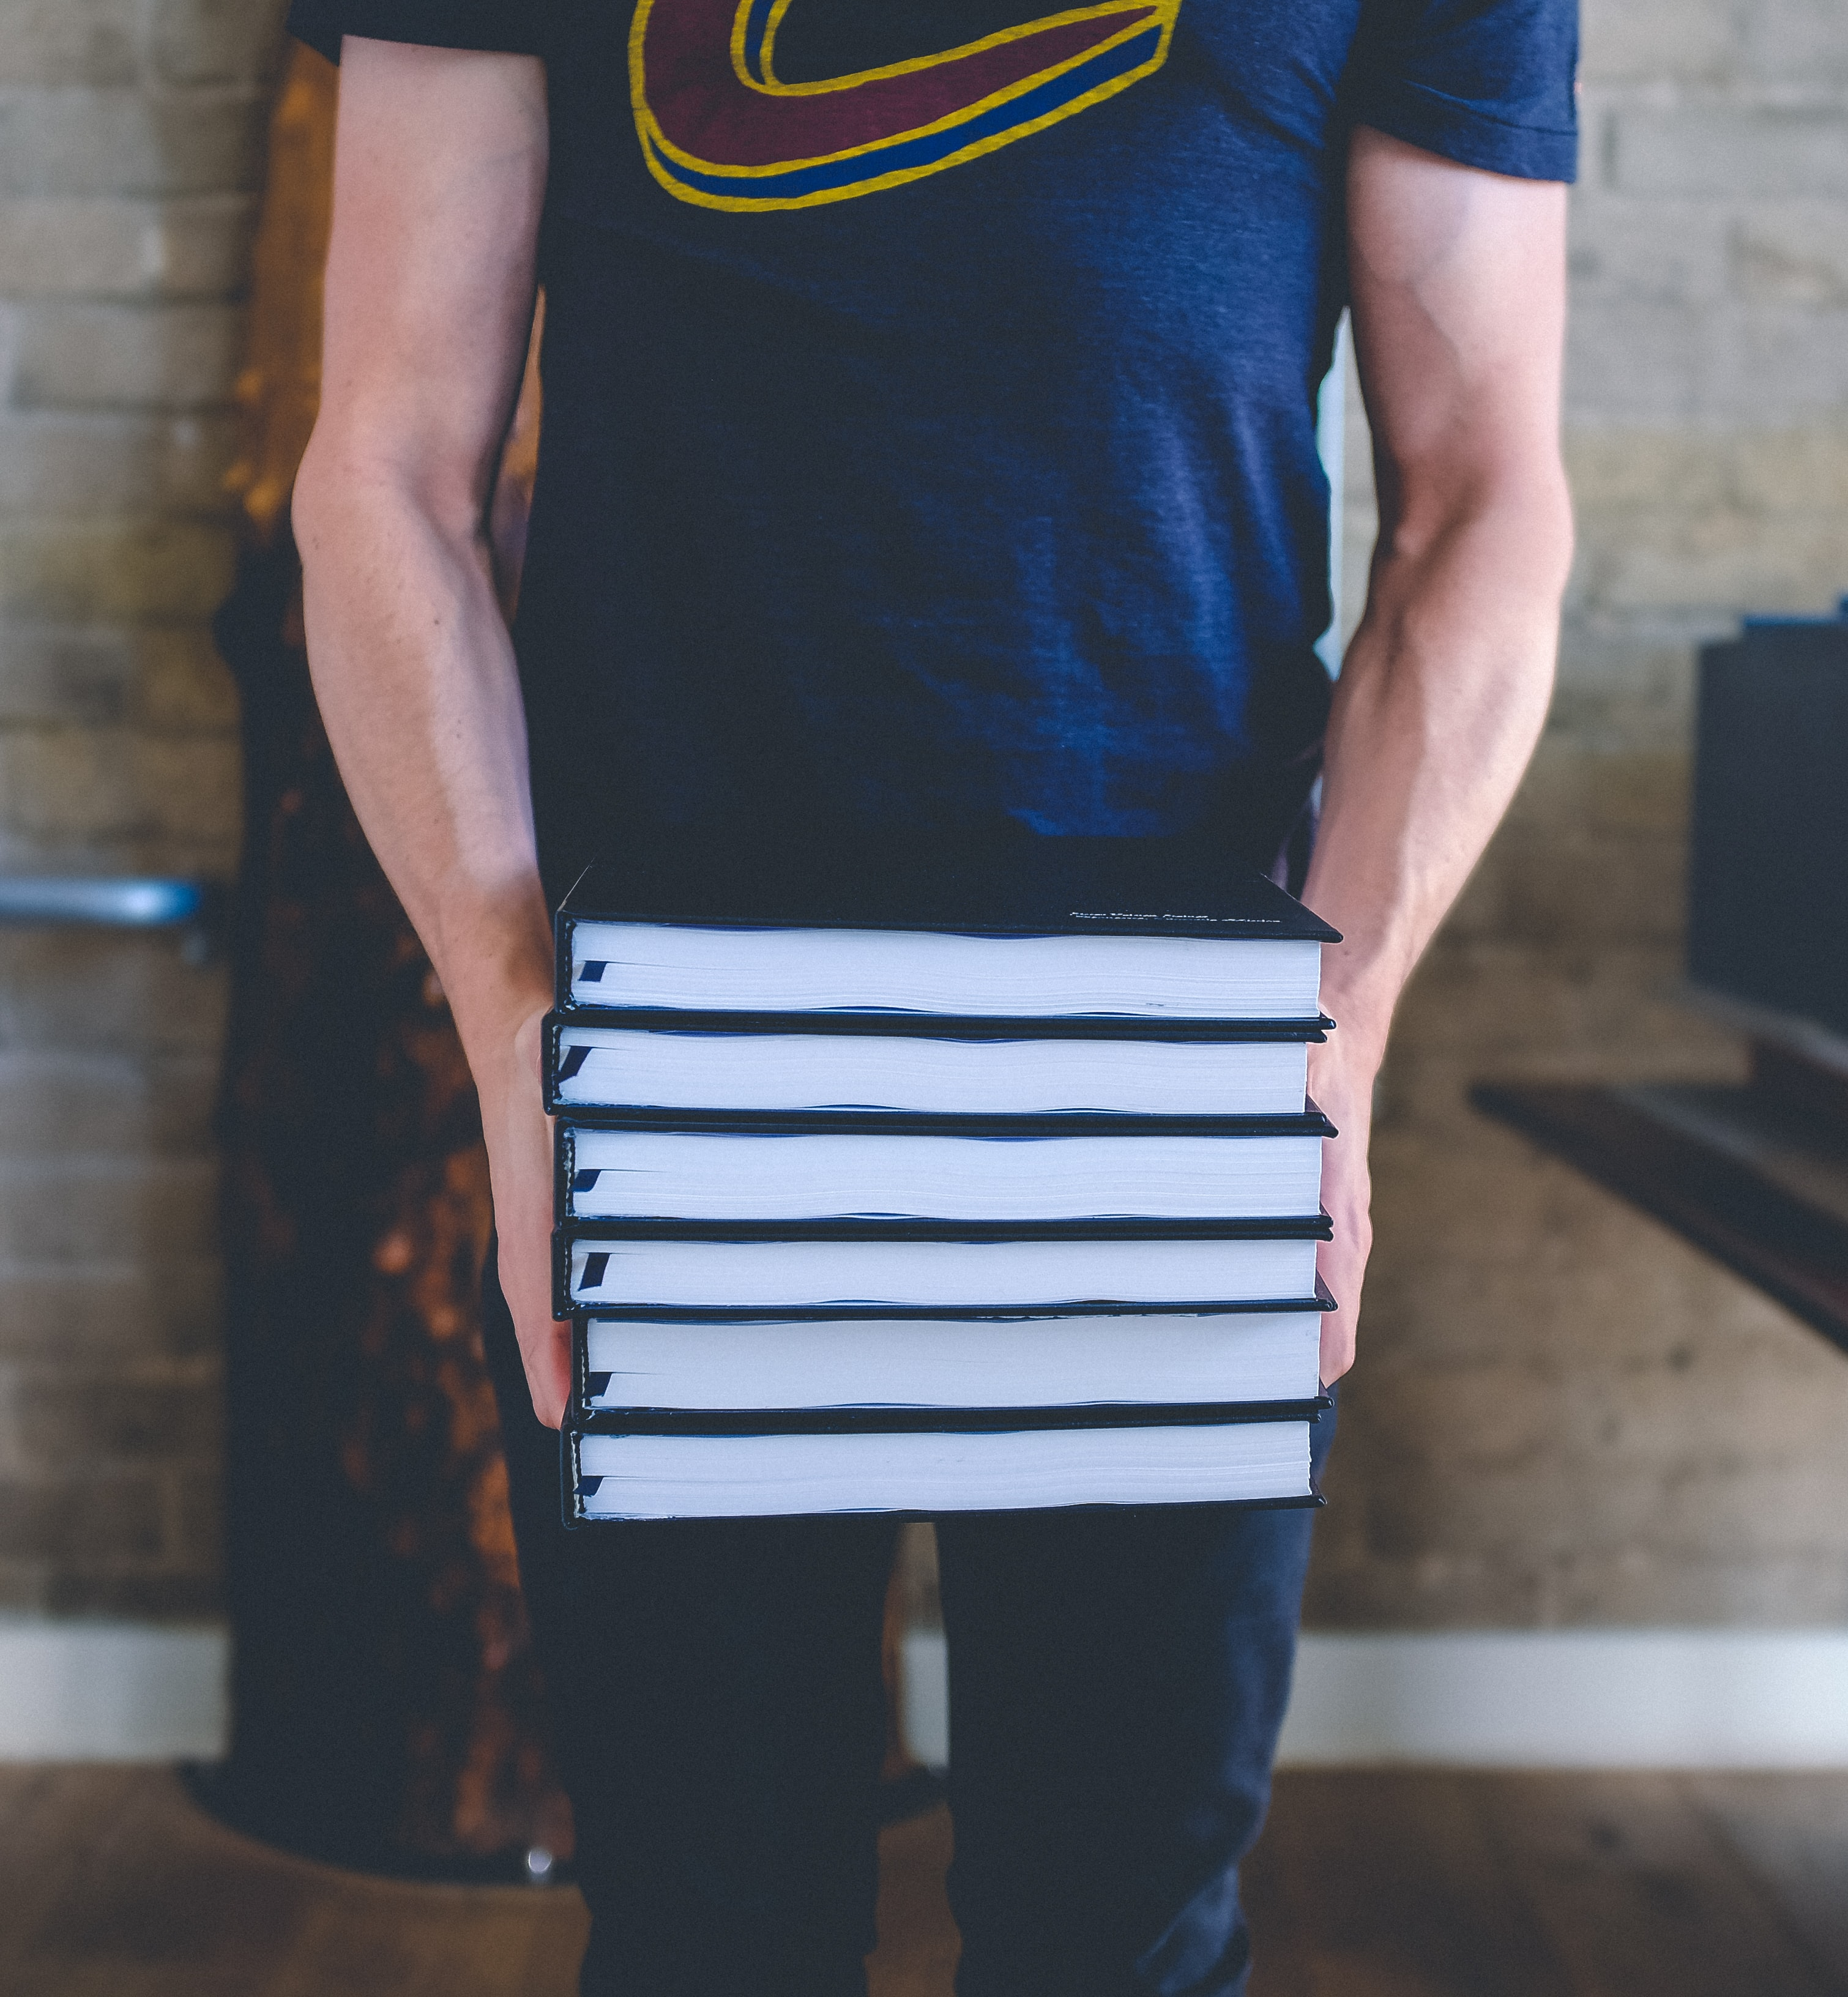 Person in a t-shirt carries a stack of books in front of an indoor brick wall